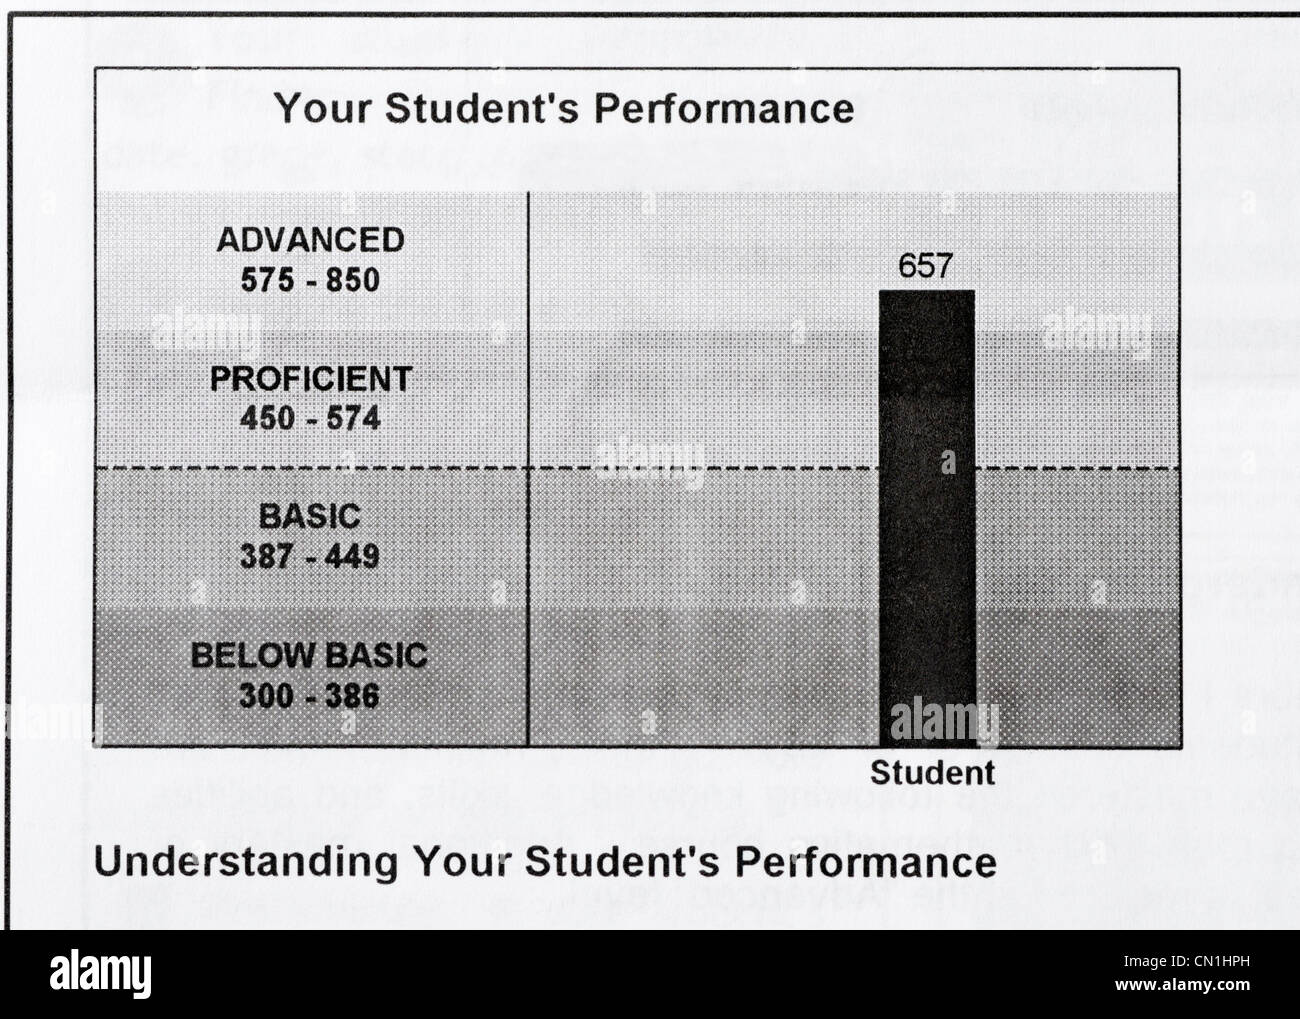 Student score report for an end of course standardized state test. The student scored in the Advanced range. - Stock Image